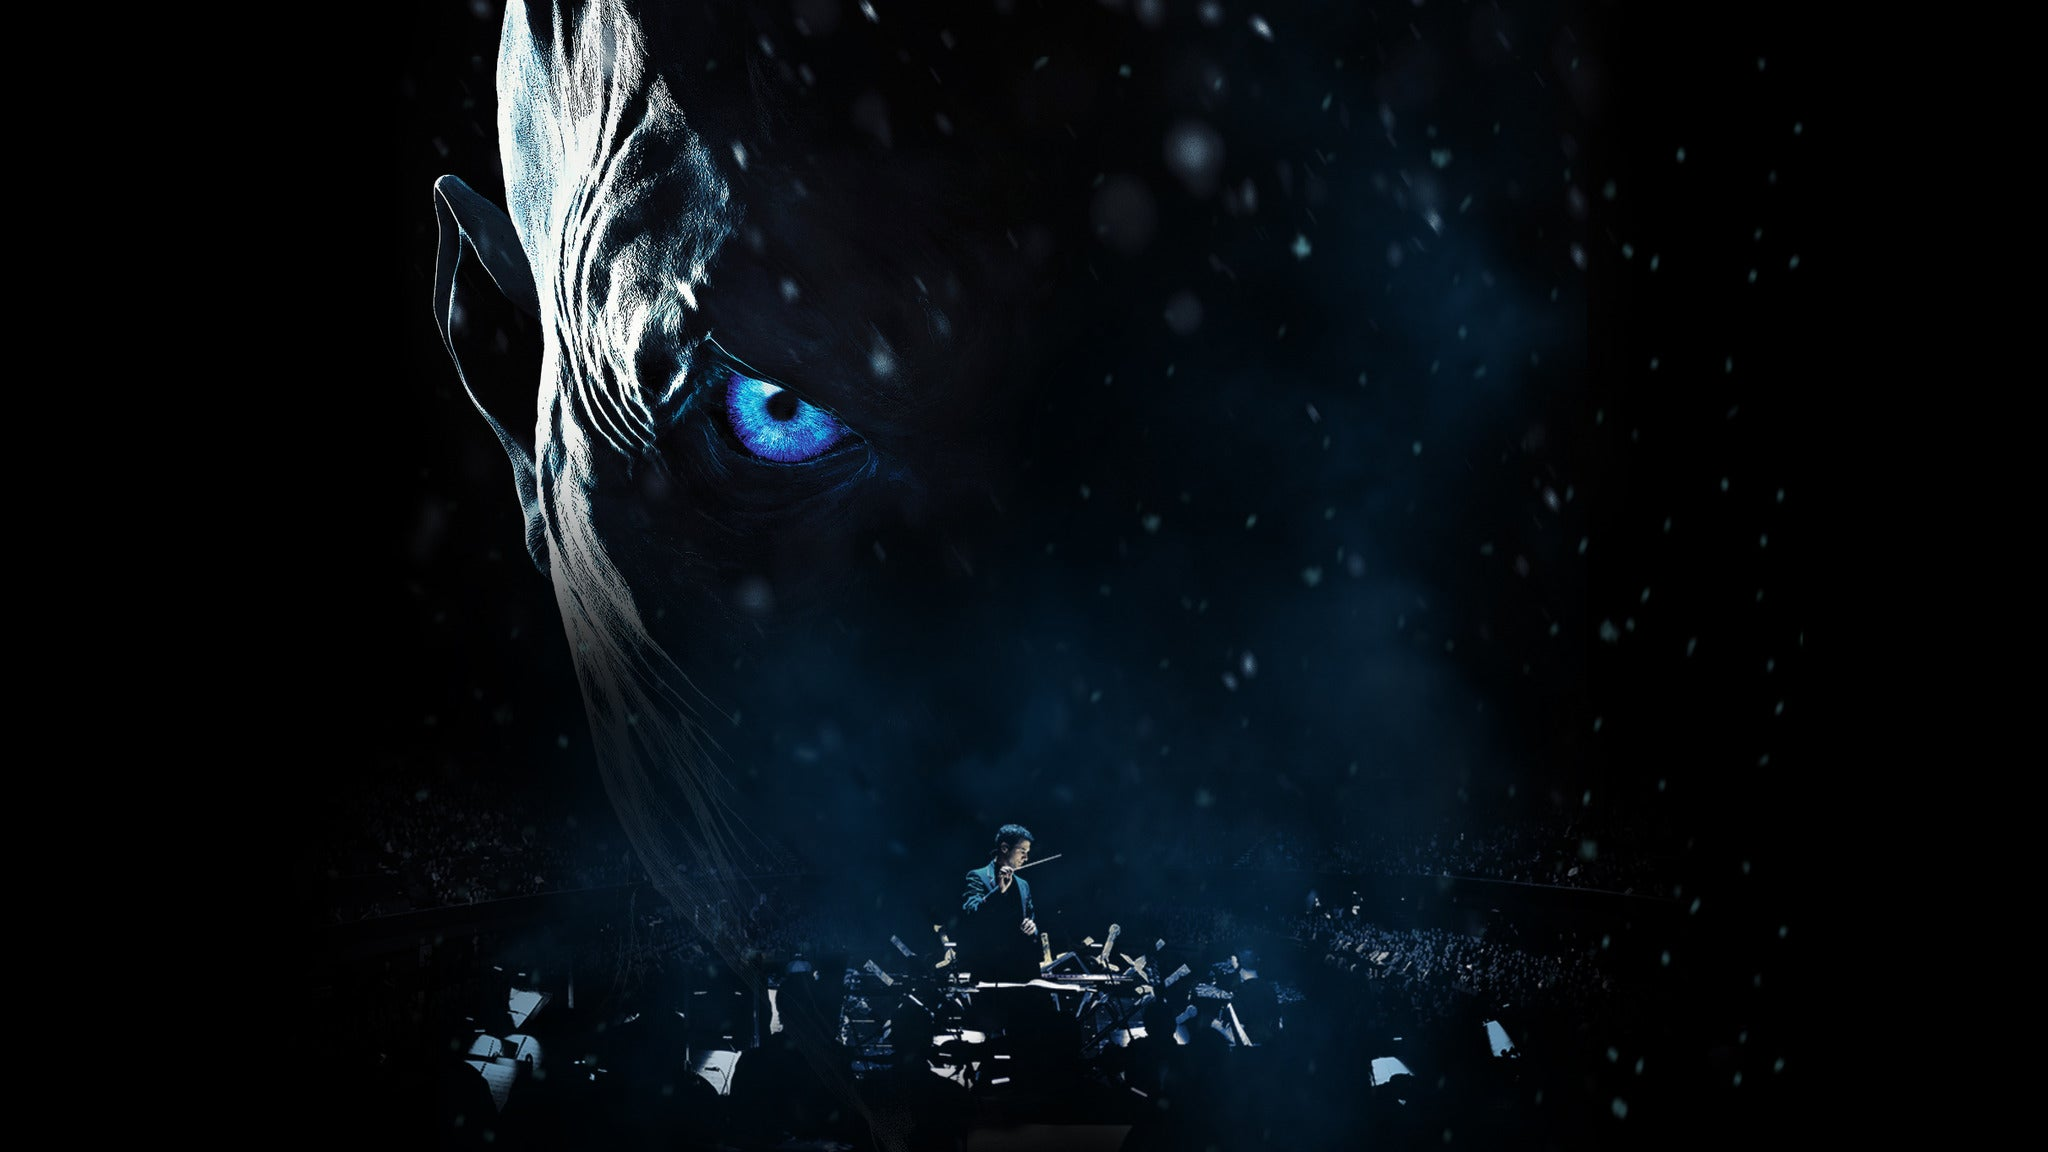 Game of Thrones Live Concert Experience at Gila River Arena